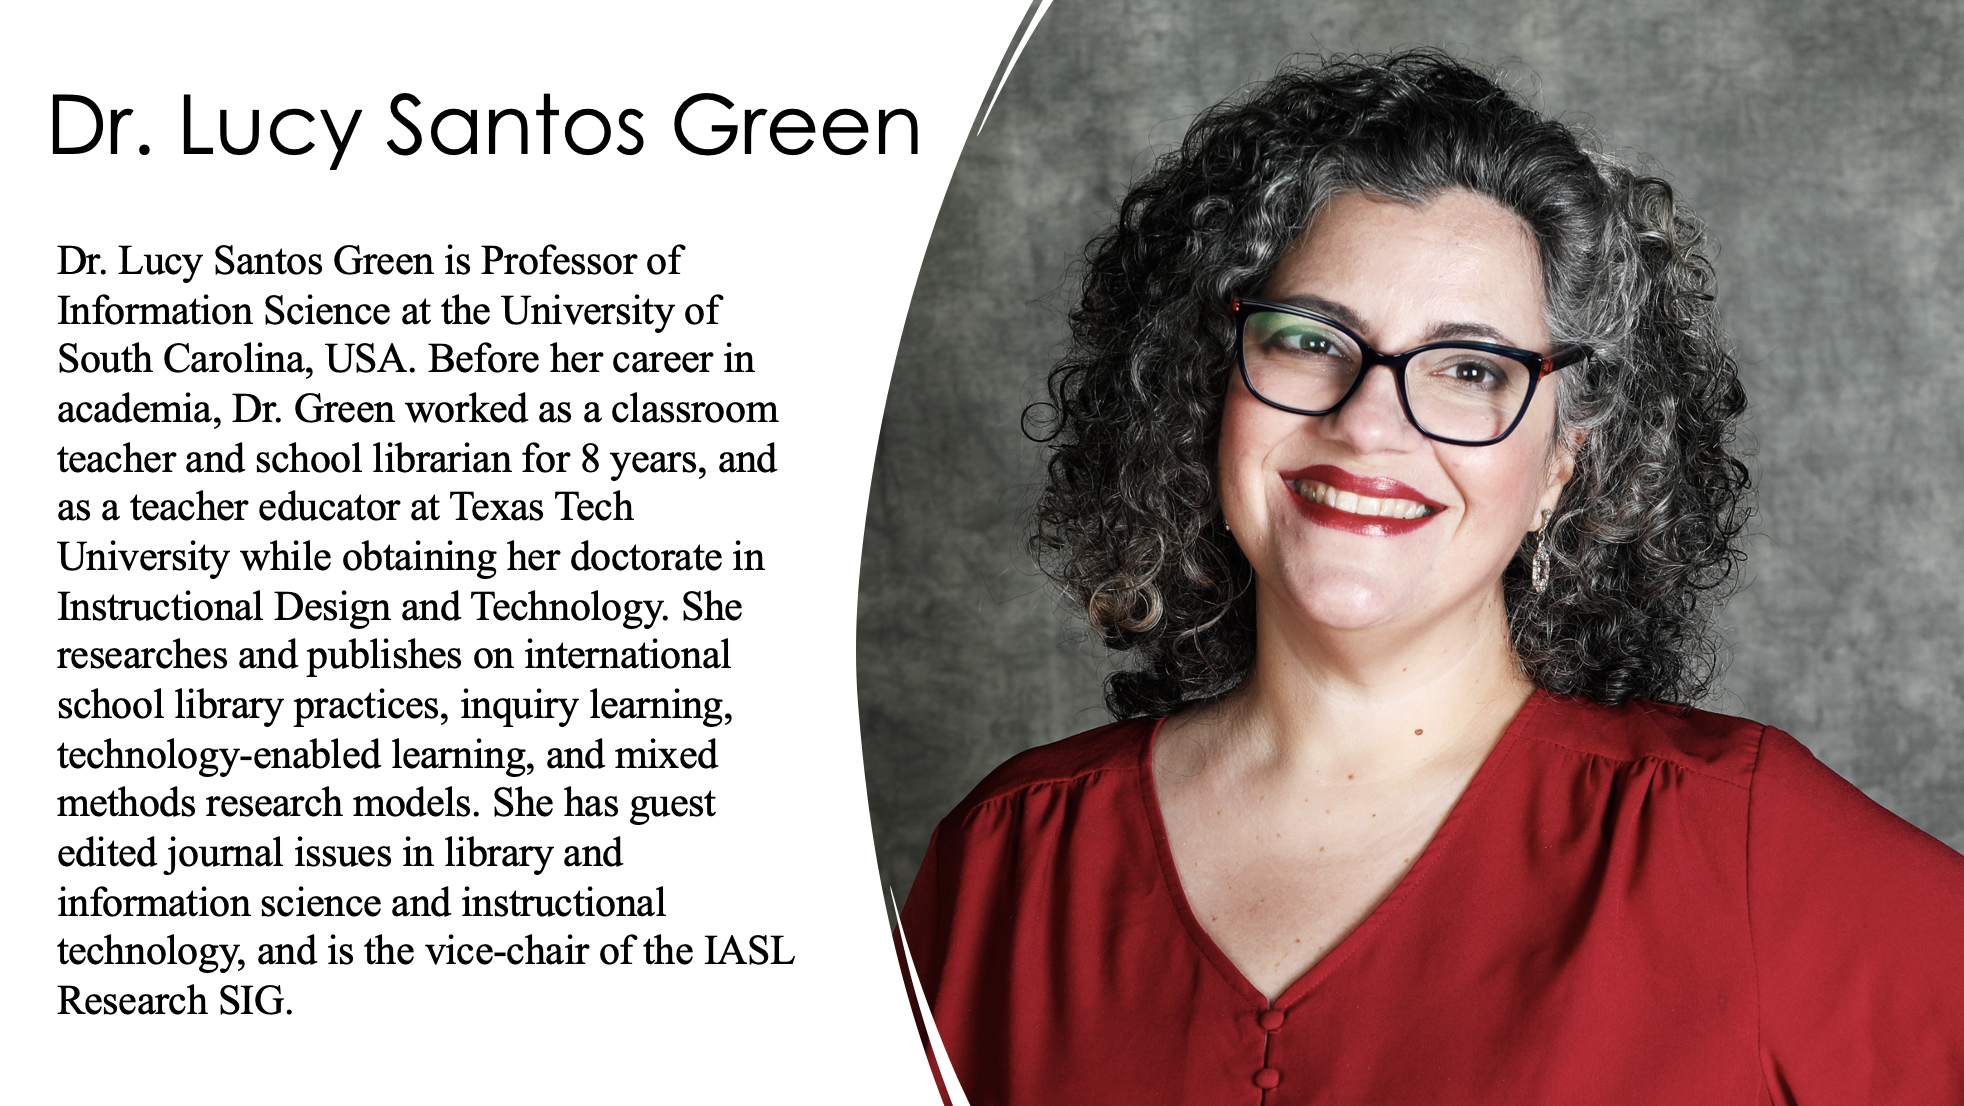 Dr. Lucy Santos Green is Professor of Information Science at the University of South Carolina, USA. Before her career in academia, Dr. Green worked as a classroom teacher and school librarian for 8 years, and as a teacher educator at Texas Tech University while obtaining her doctorate in Instructional Design and Technology. She researches and publishes on international school library practices, inquiry learning, technology-enabled learning, and mixed methods research models. She has guest edited journal issues in library and information science and instructional technology,and is the vice-chair of the IASL Research SIG.